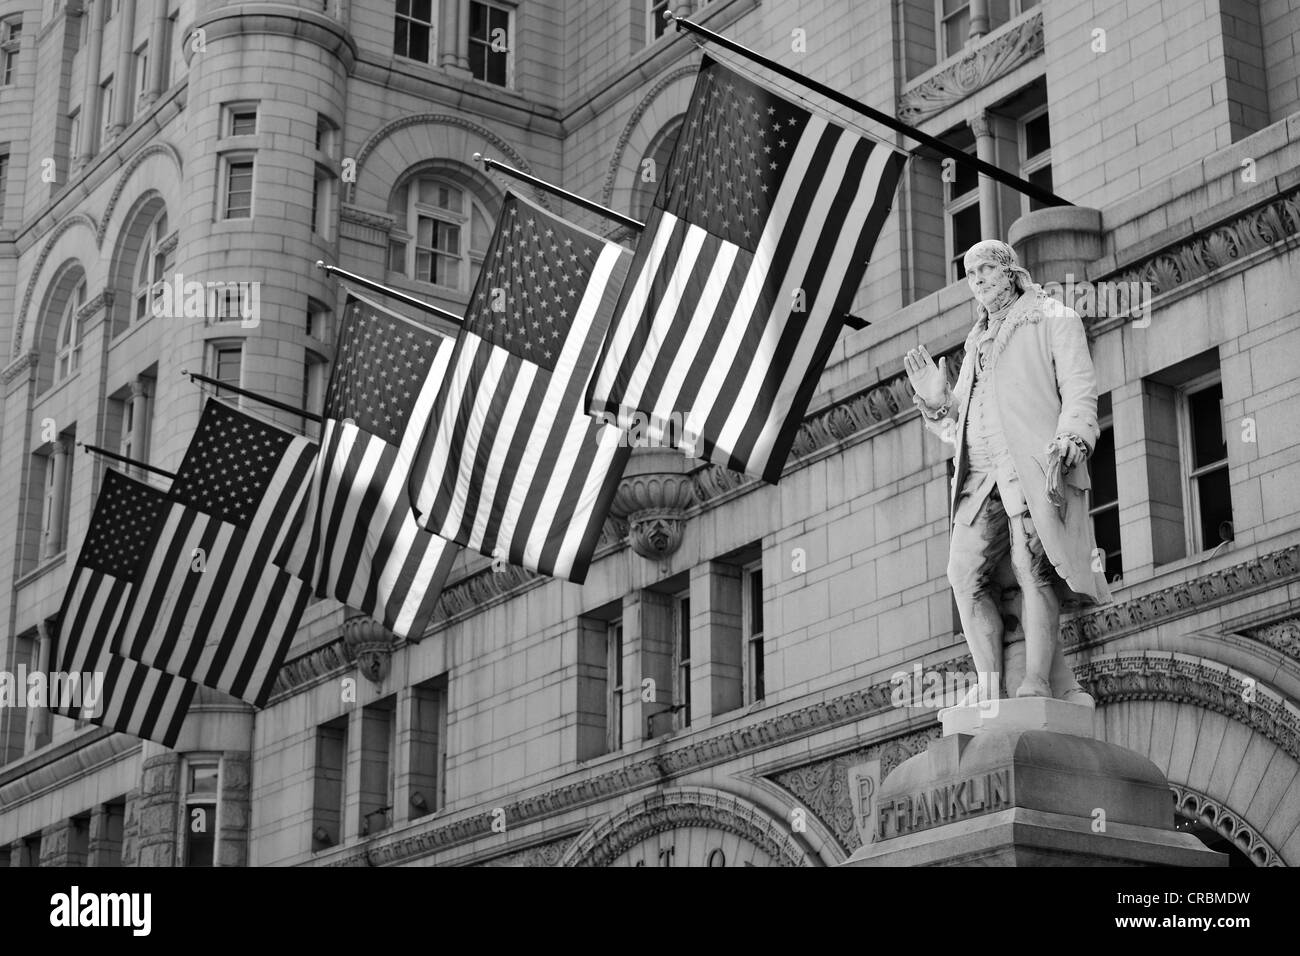 Black And White Image Benjamin Franklin Statue In Front